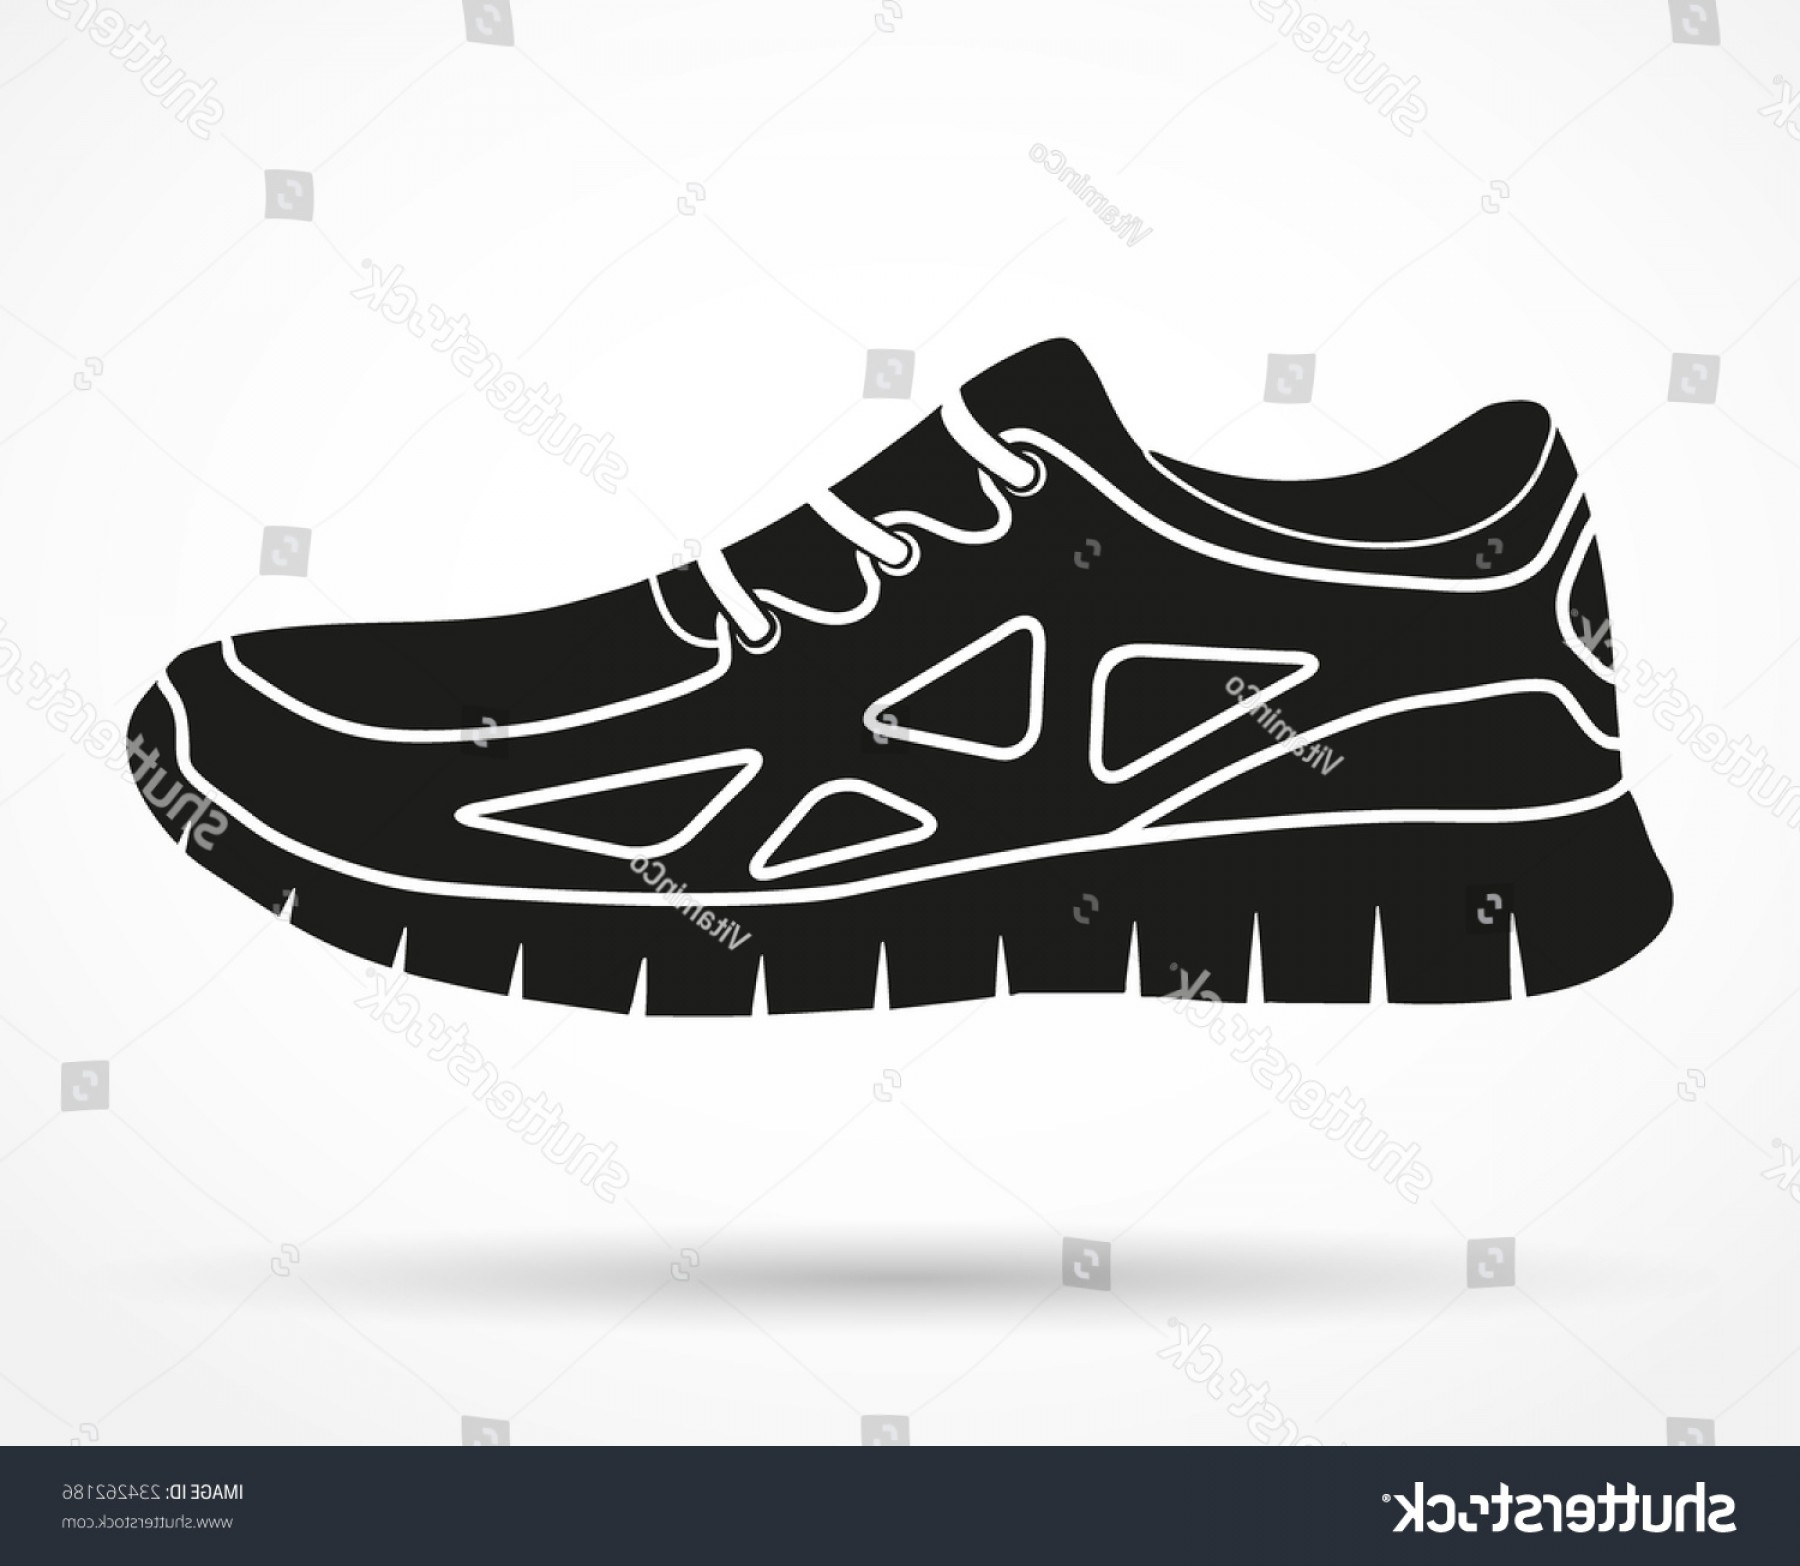 Sneaker Silhouette Vector: Silhouette Symbol Shoes Running Fitness Sneakers